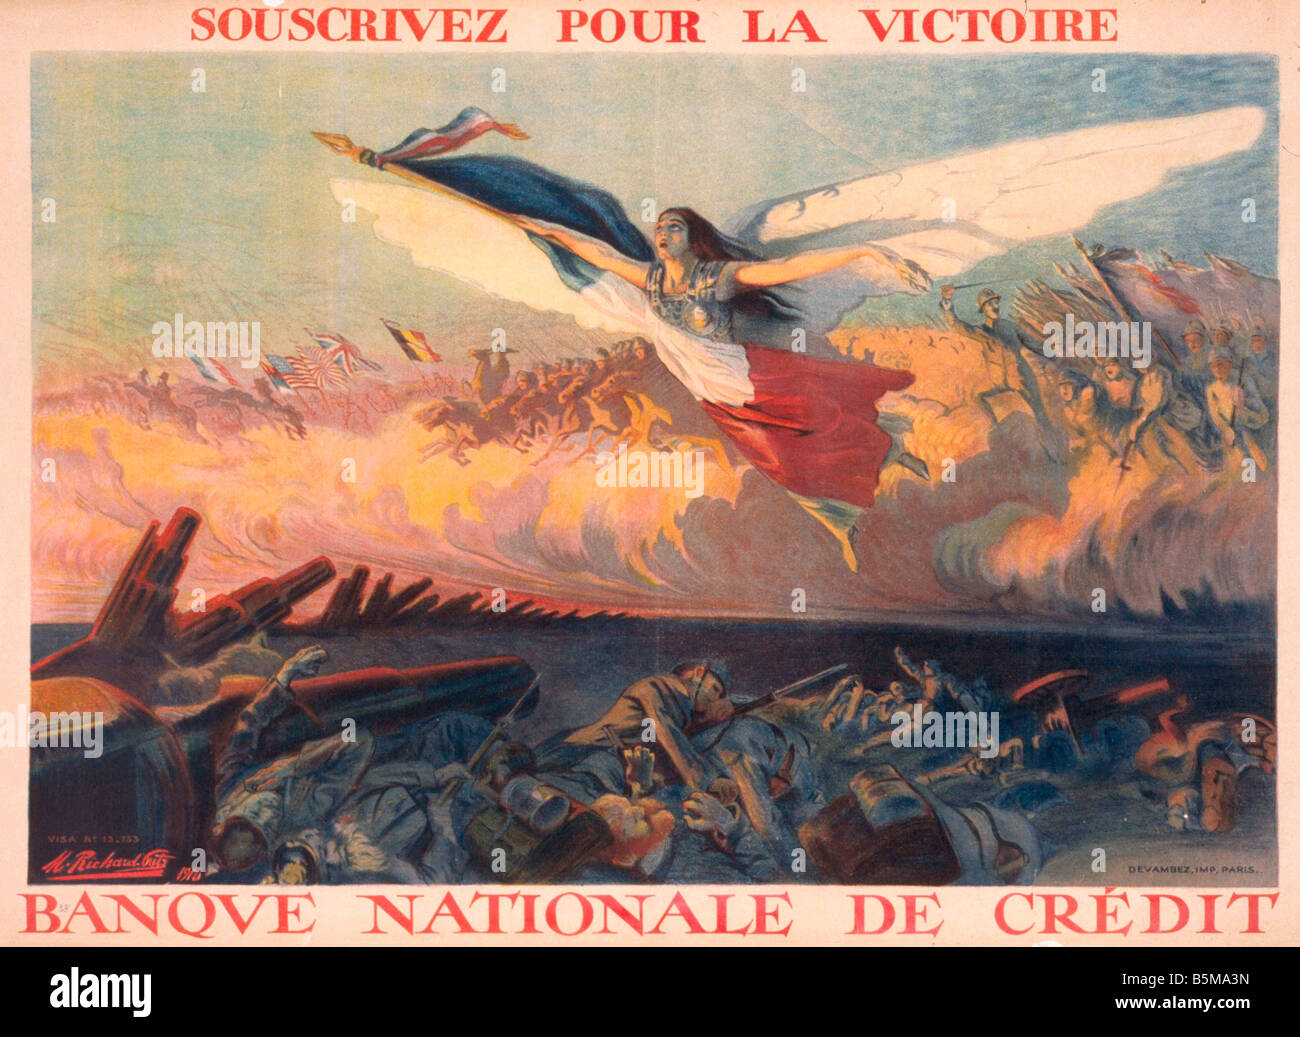 2 G55 P1 1916 42 WW I War Loans French Poster 1916 History World War I Propaganda Souscrivez pour la victoire Banque - Stock Image